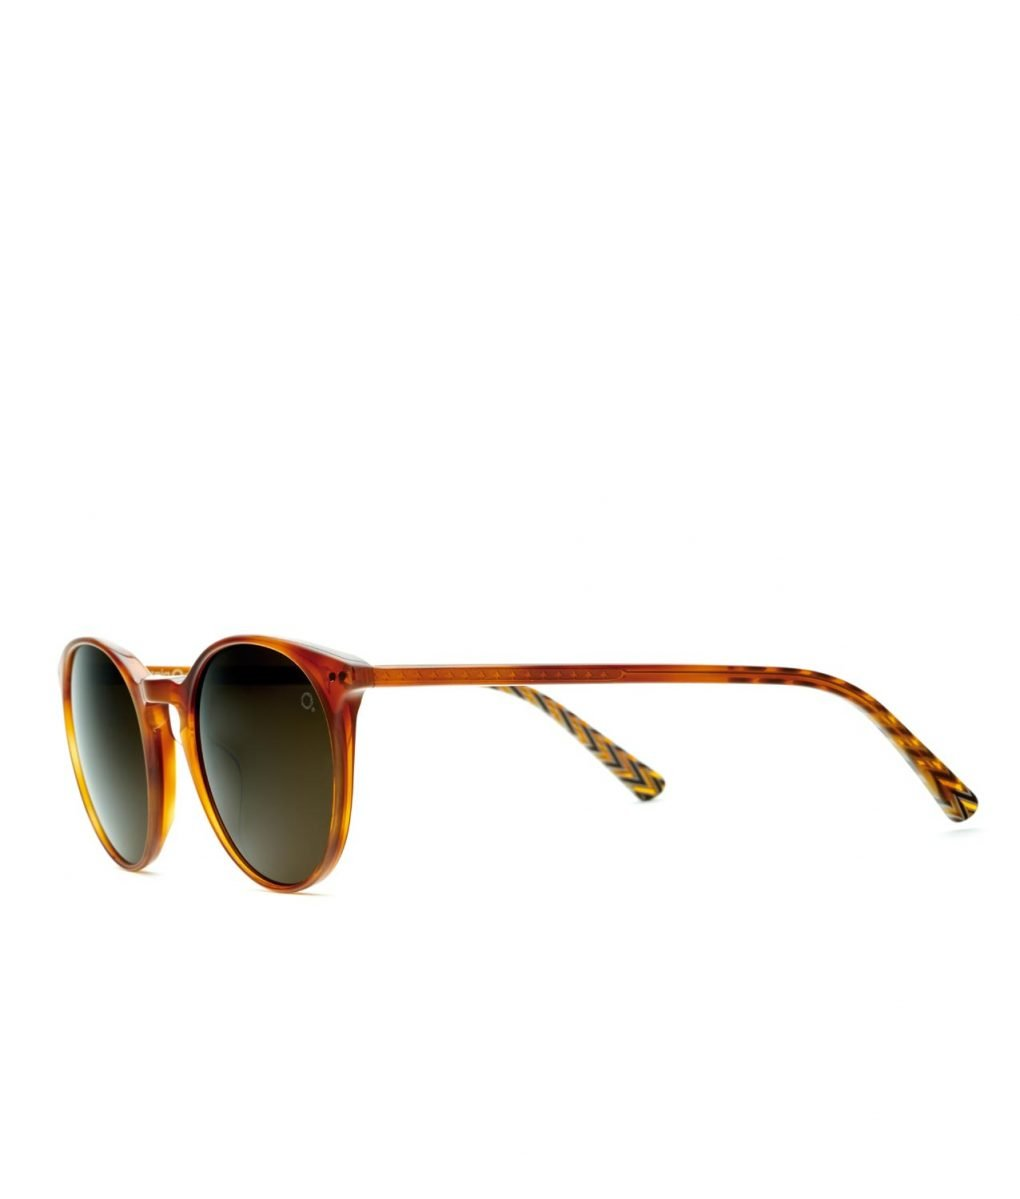 polarize sunglasses